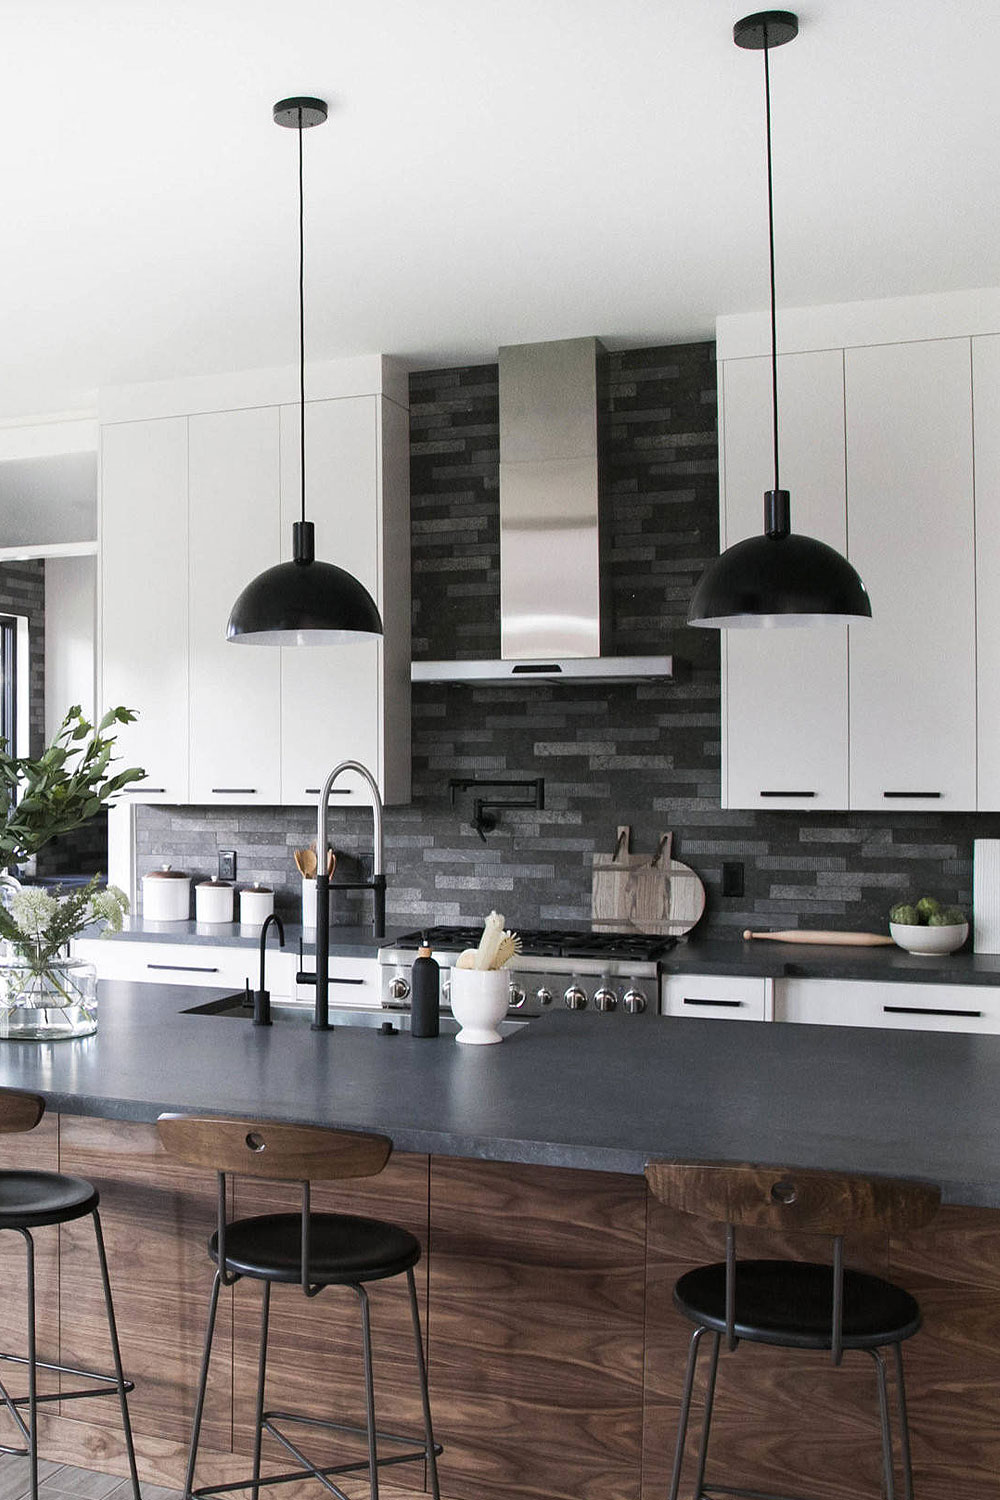 31+ Black Subway Backsplash ( Ideas ) - The Power of Black ... on Backsplash Ideas For Black Countertops  id=18308